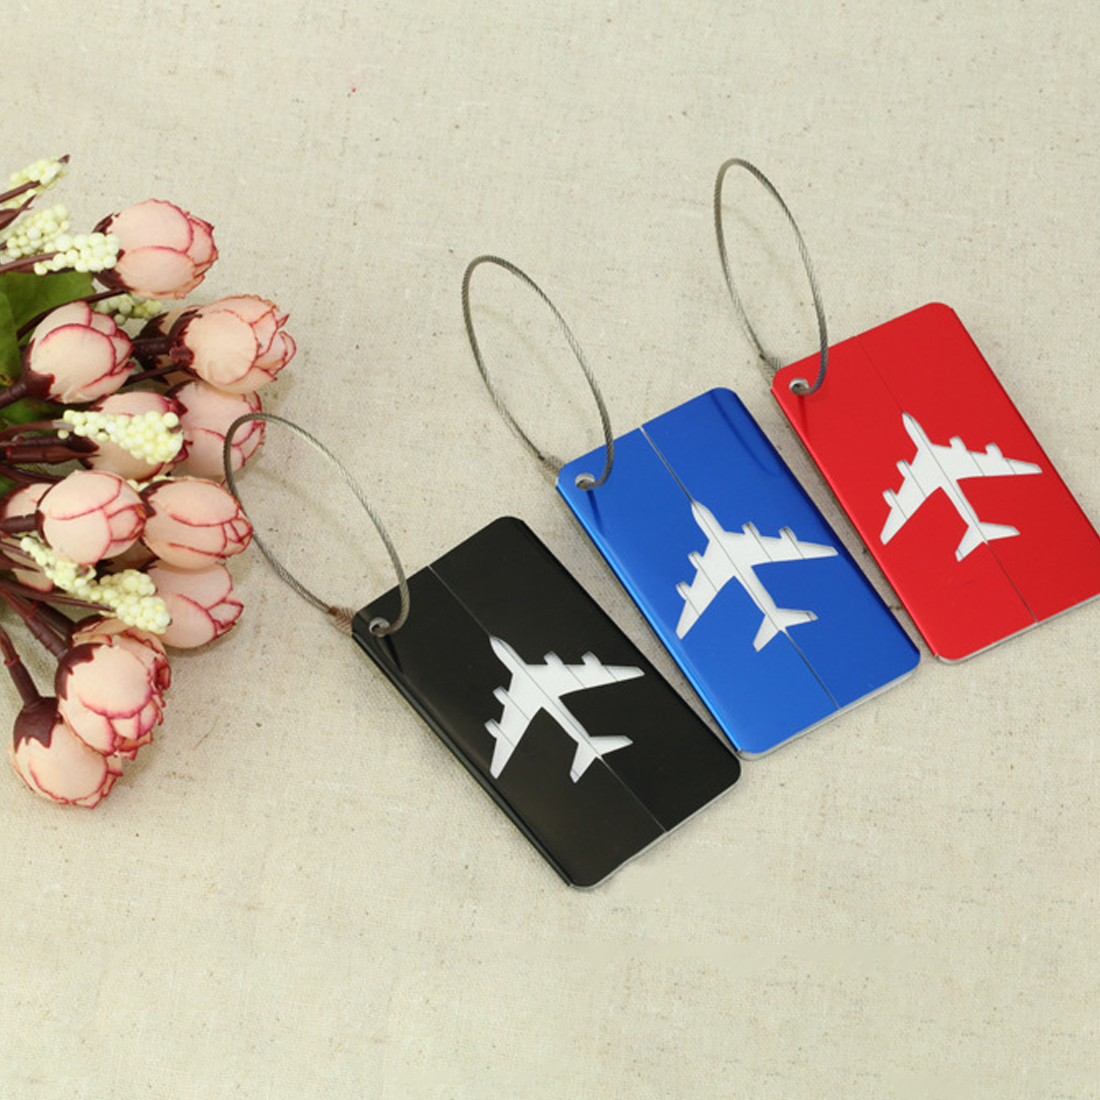 Mini Rectangle Aluminium Alloy Luggage Tags Travel Accessories Baggage Name Tags Suitcase Address Label Holder